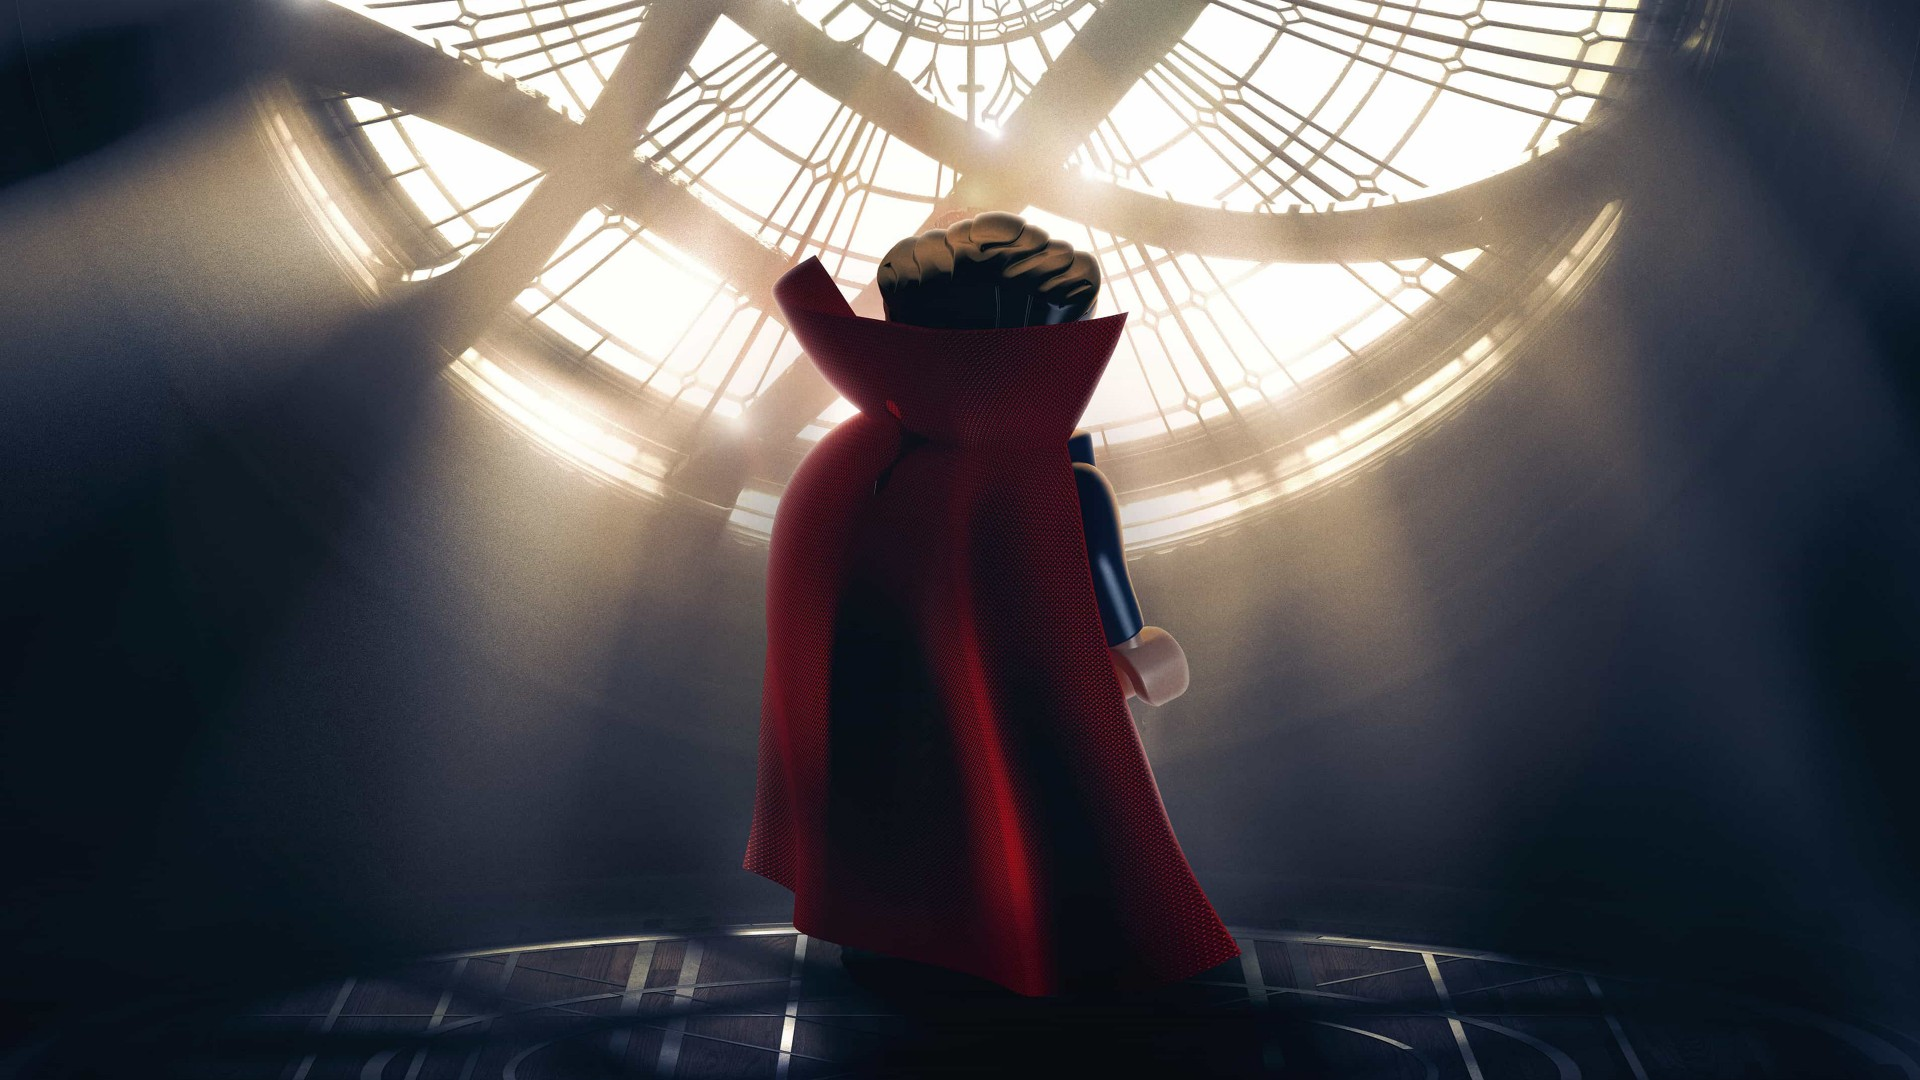 Ultra Hd 4k Wallpapers For Iphone Lego Doctor Strange 4k Wallpapers Hd Wallpapers Id 19755